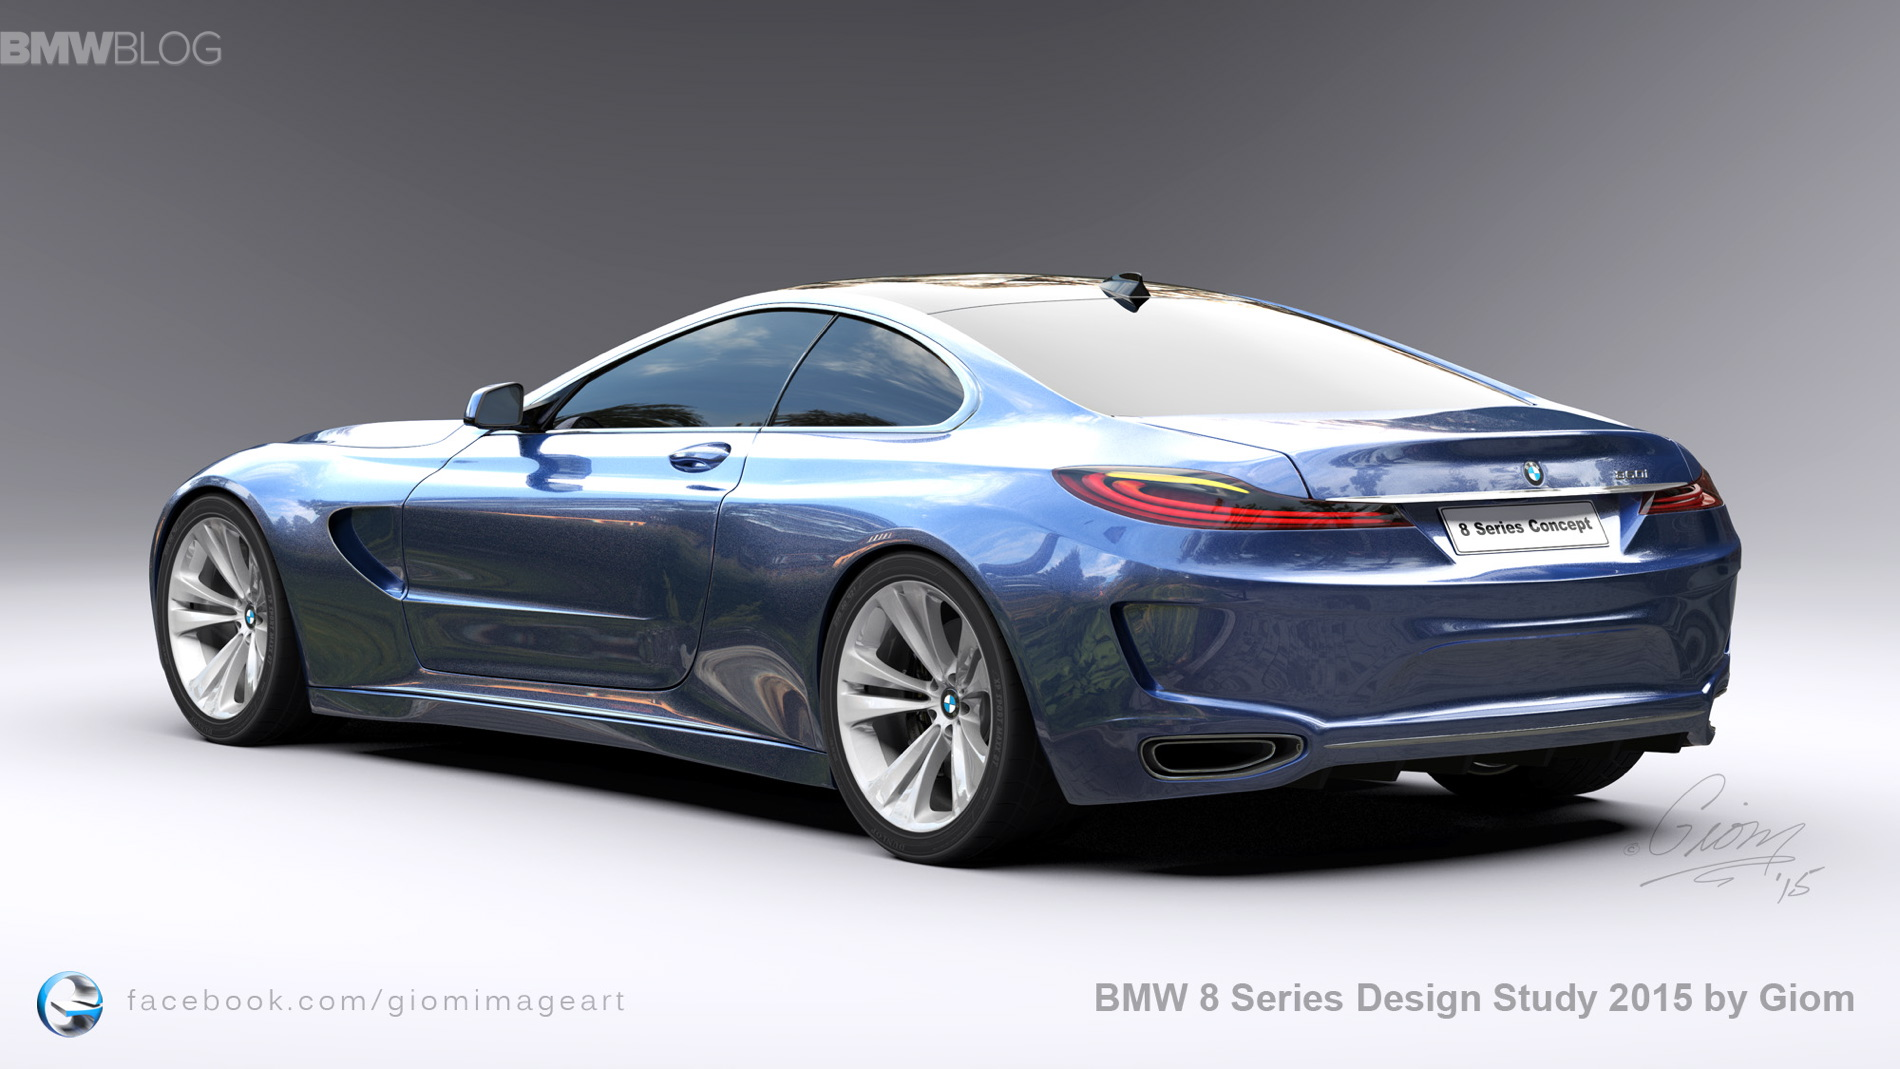 Bmw Car Hd Wallpaper Bmw 8 Series Design Study Aims To Revive The Spirit Of The